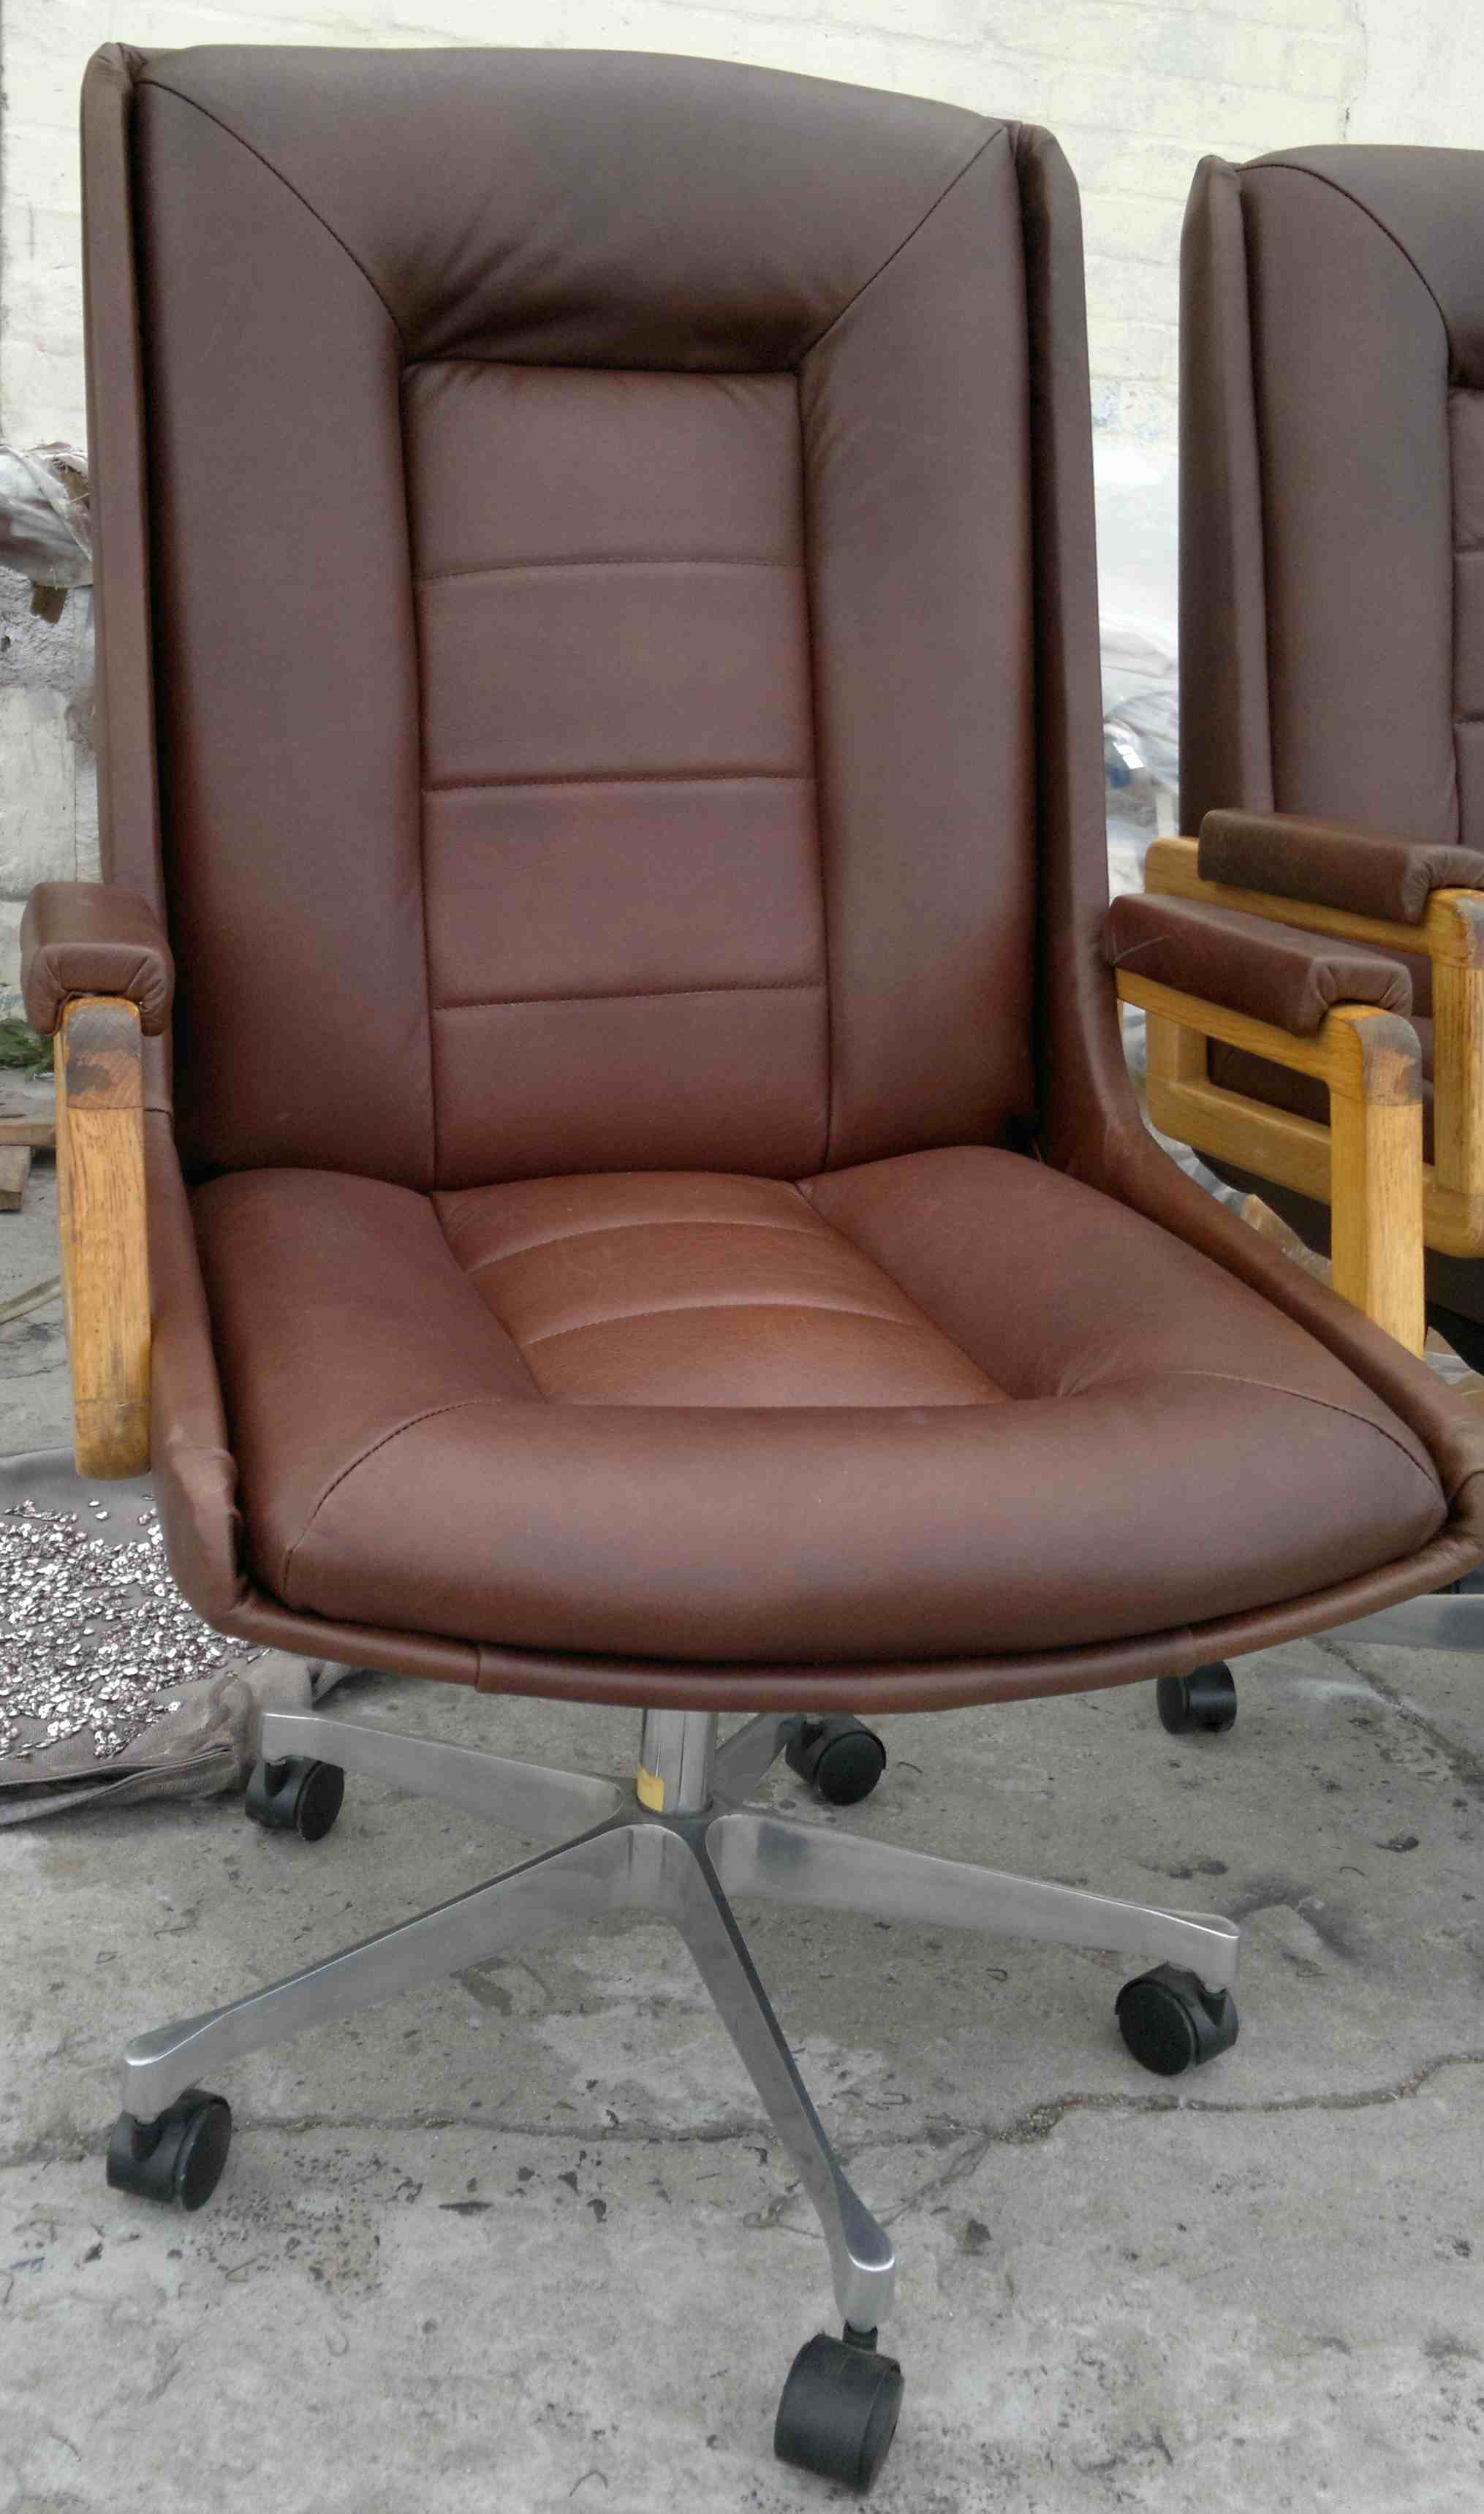 Reupholstery of leather office chairs upholstery cape town for Recover furniture cape town